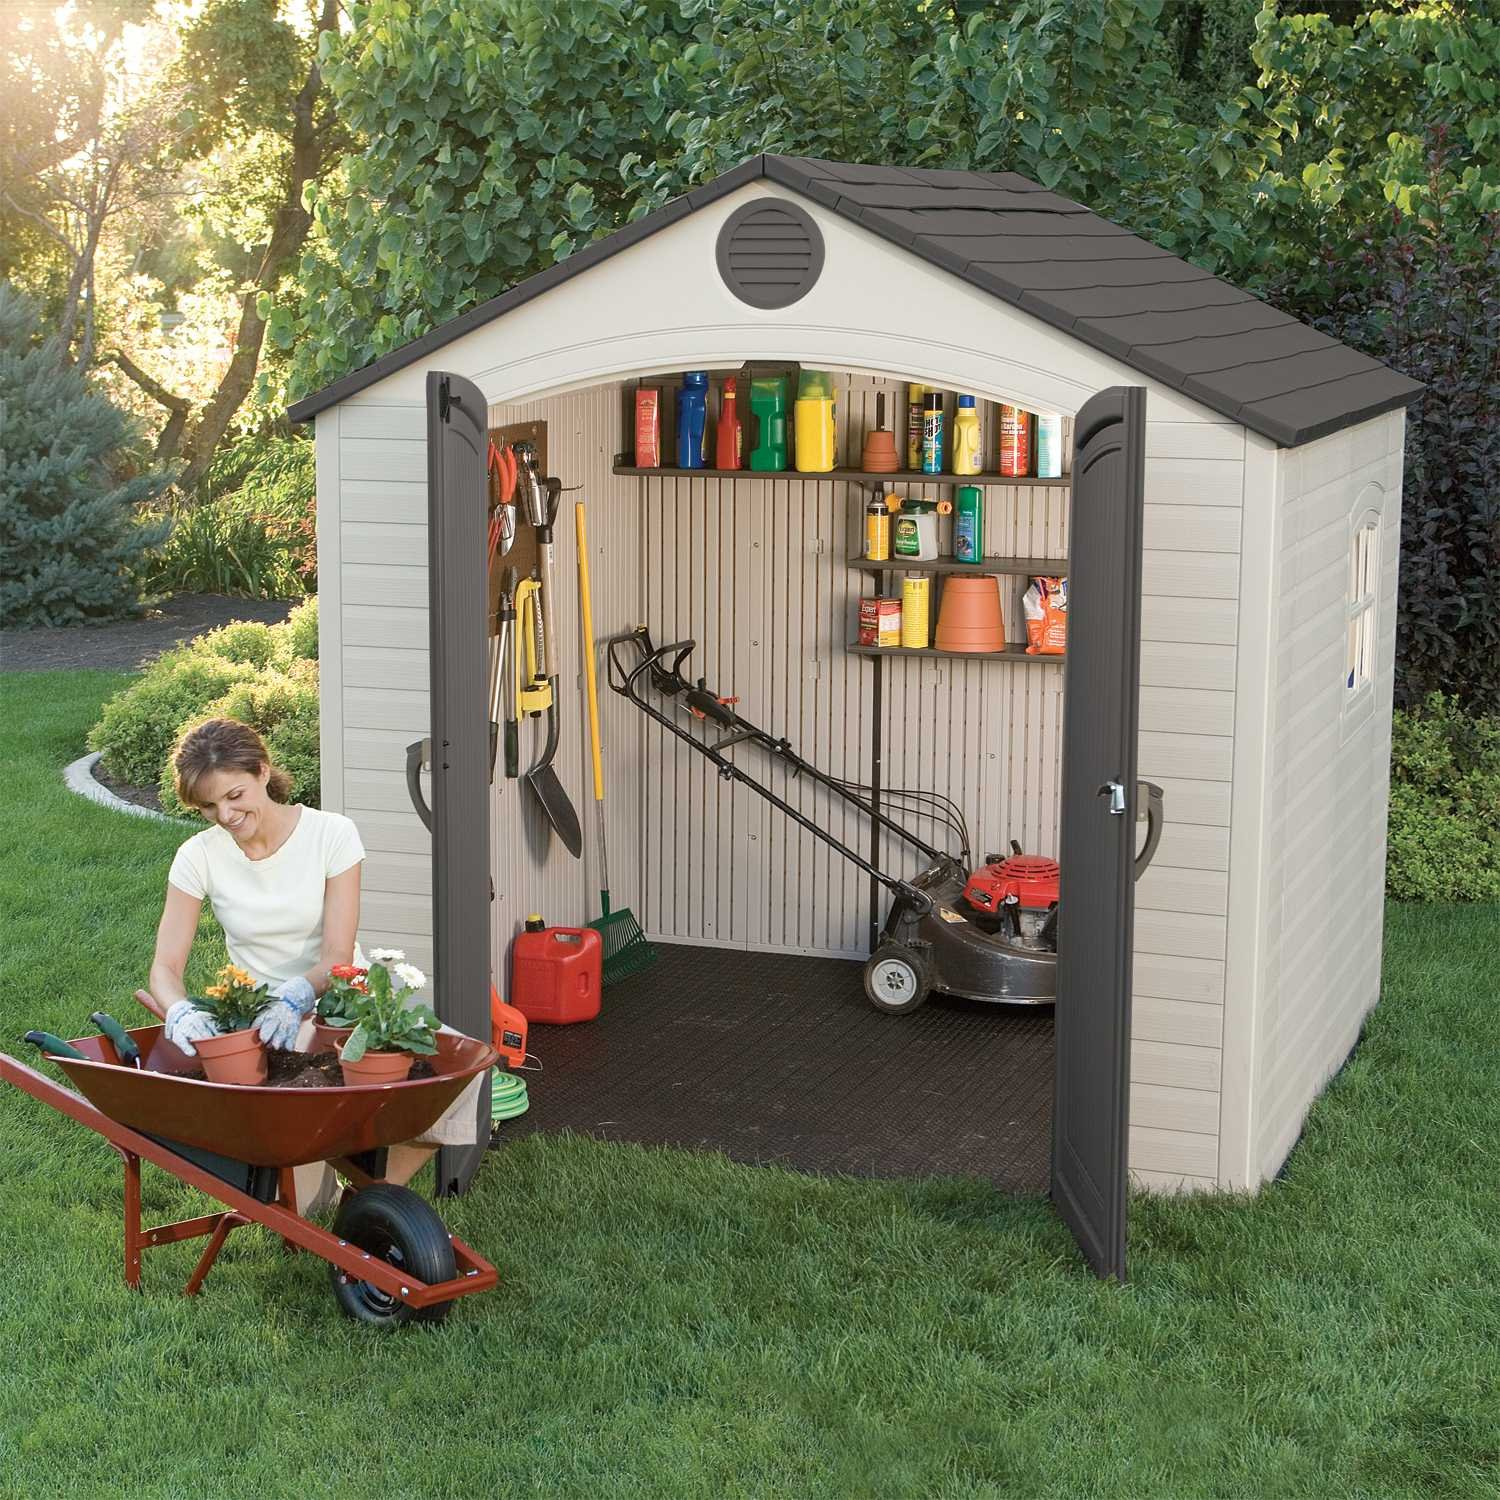 sheds statewideshed pine co shed aol email vinyl quality priced com low statewide